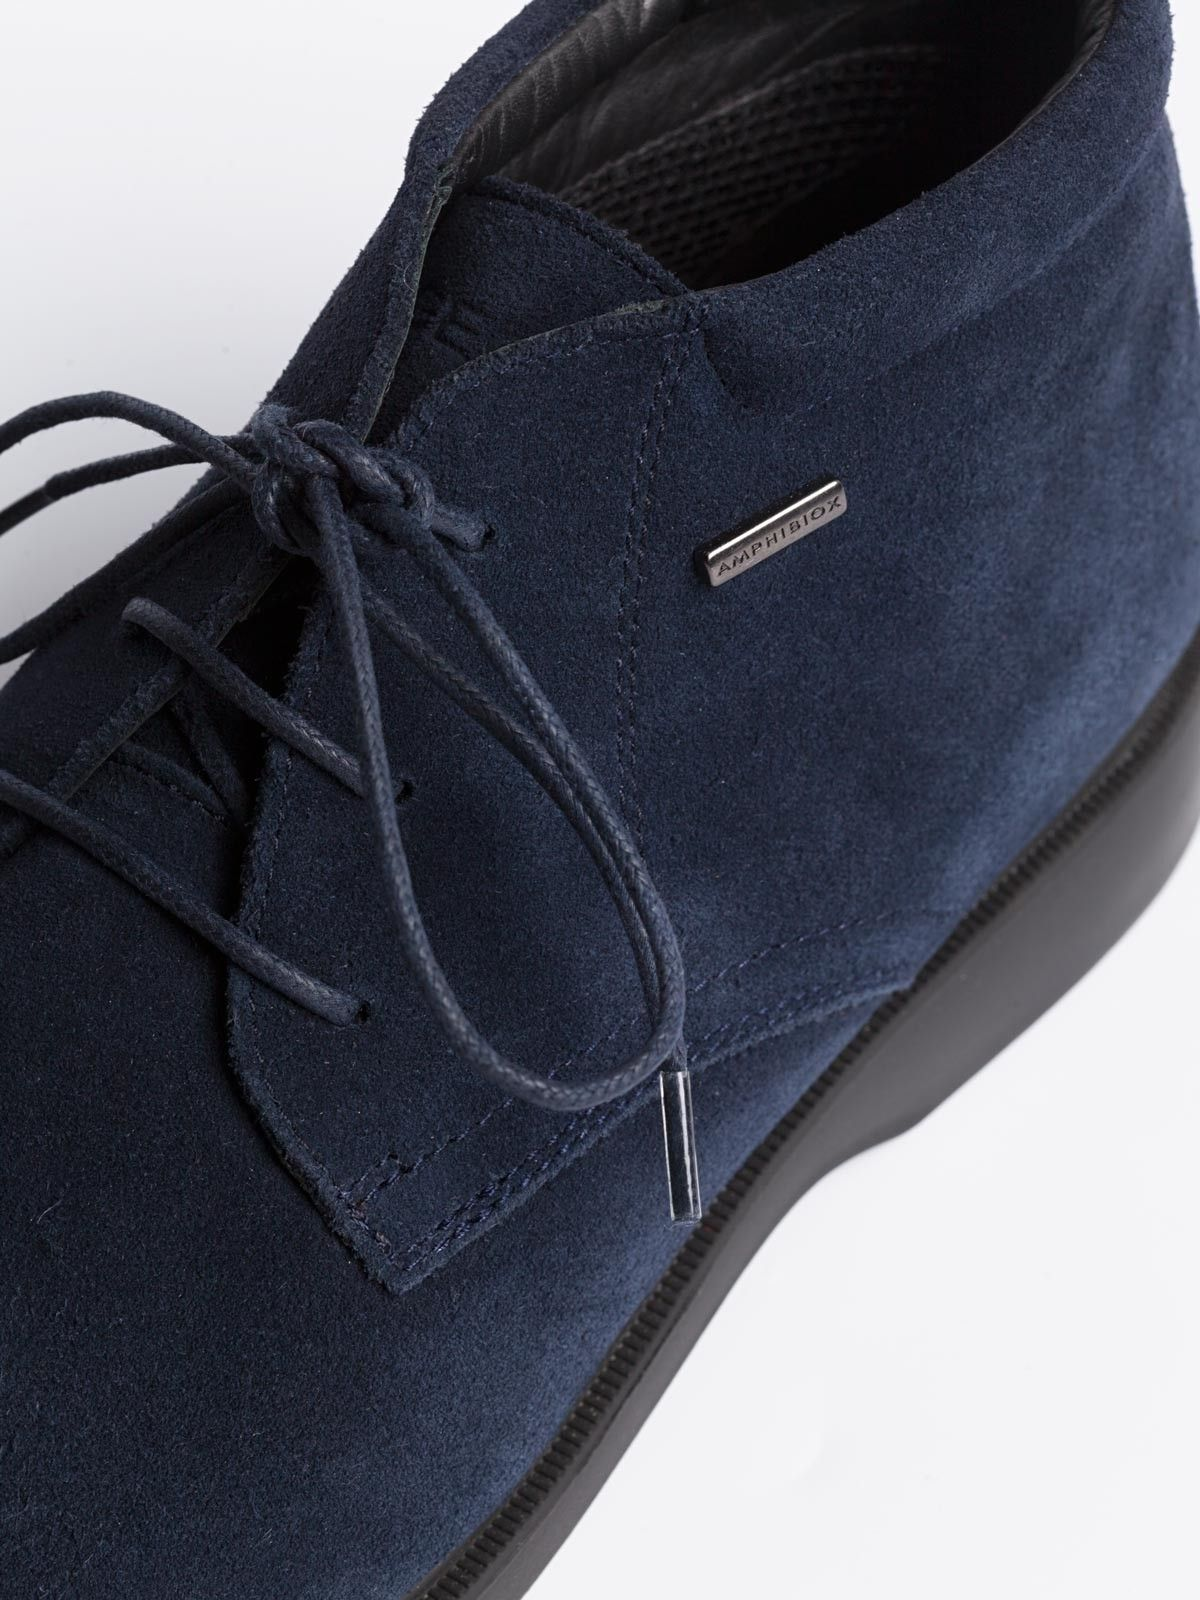 6d5a97e3b5 Geox Waterproof Suede Chukka Boots in Navy - A Suede chukka boot is the  off-duty staple shoe for the city slicker and retired Colonel alike.